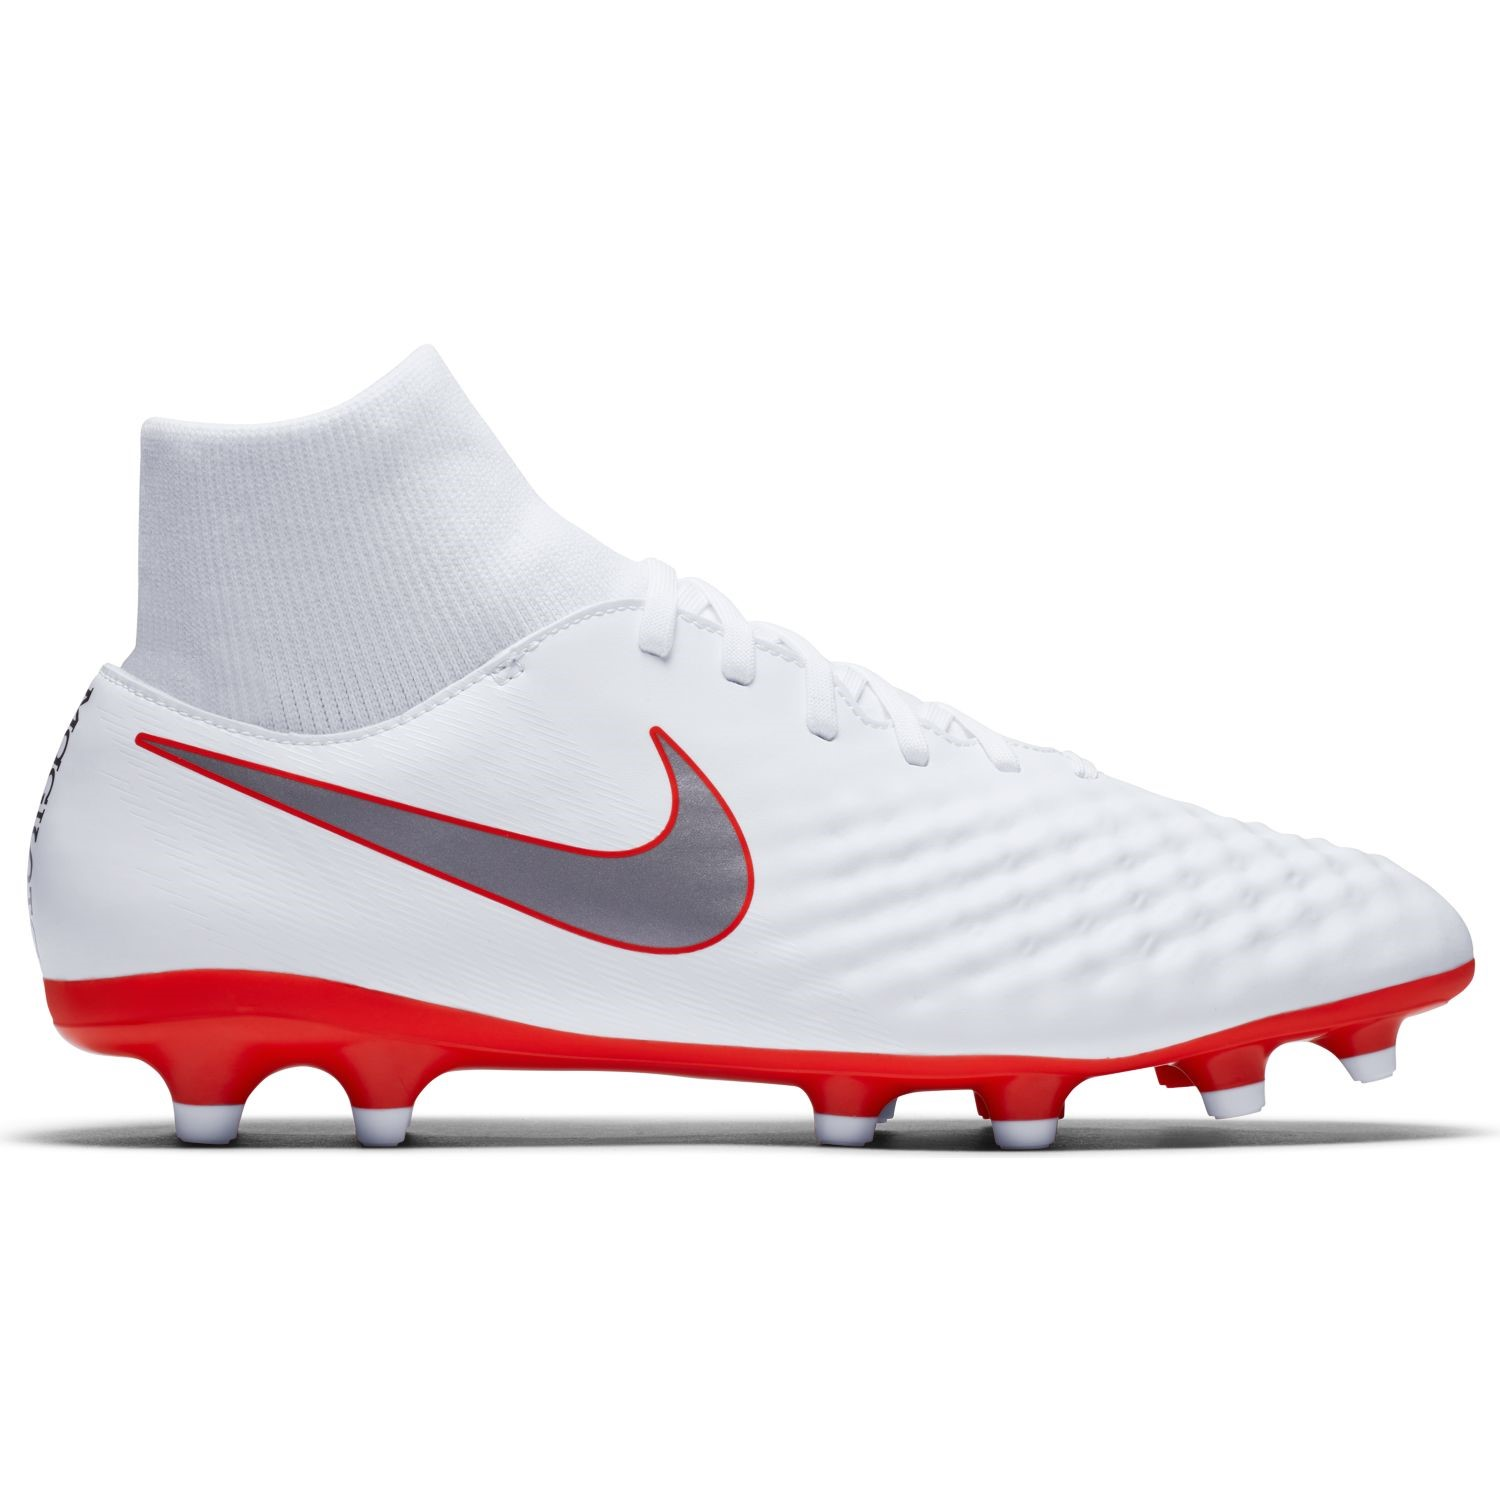 official photos a1cf3 d3cf8 Nike Magista Obra II Academy DF FG - Mens Football Boots - White Metallic